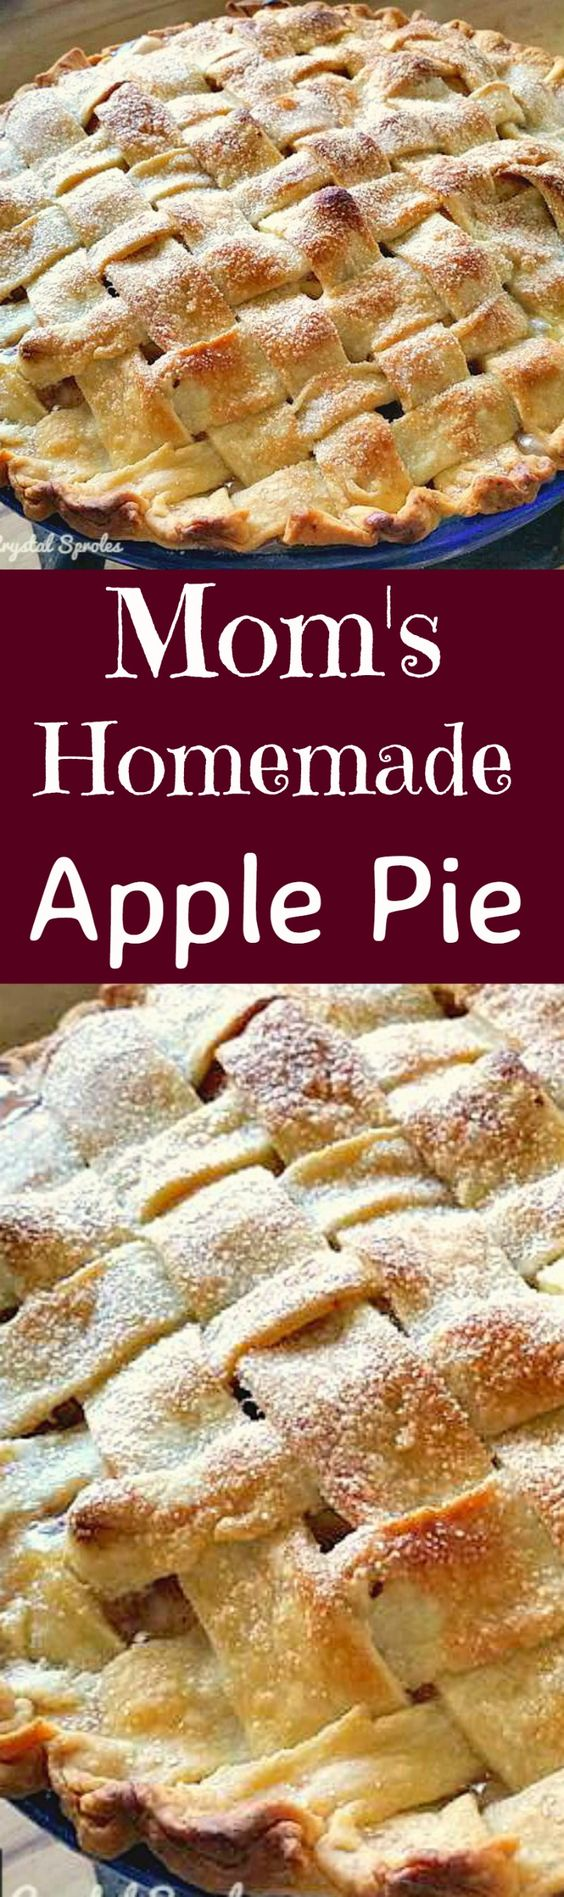 Mom's Homemade Apple Pie. A wonderful old family recipe, simple ingredients, easy to make and delicious every time! Perfect for a regular family dessert, or to take to pot lucks, Thanksgiving, or anytime!  Lovefoodies.com